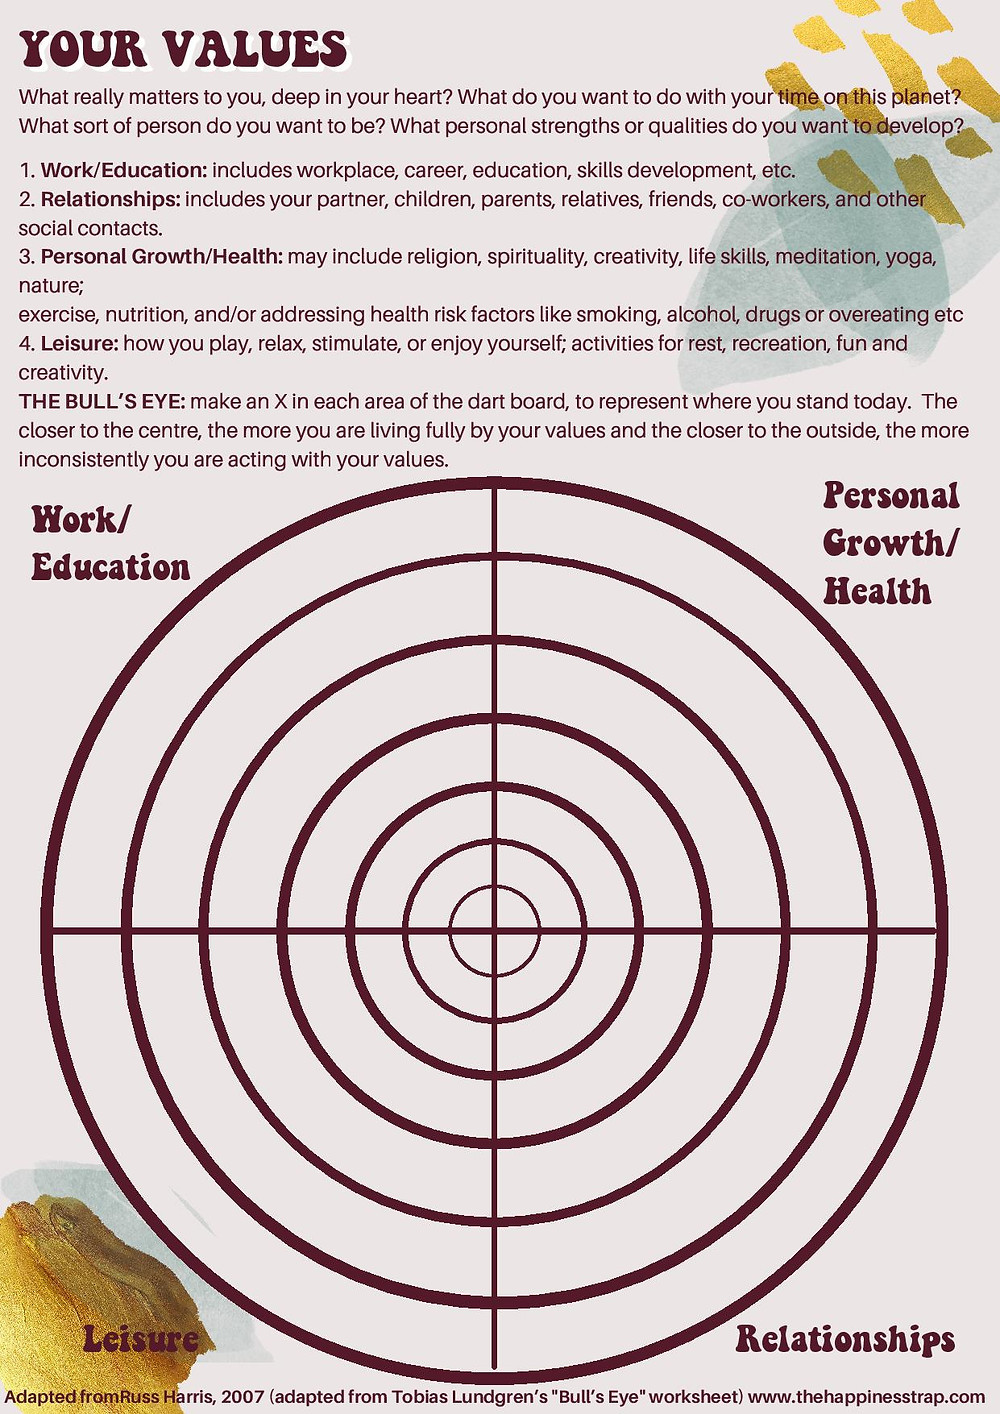 'Your Values' worksheet focusing on work + education, relationships, personal growth and leisure